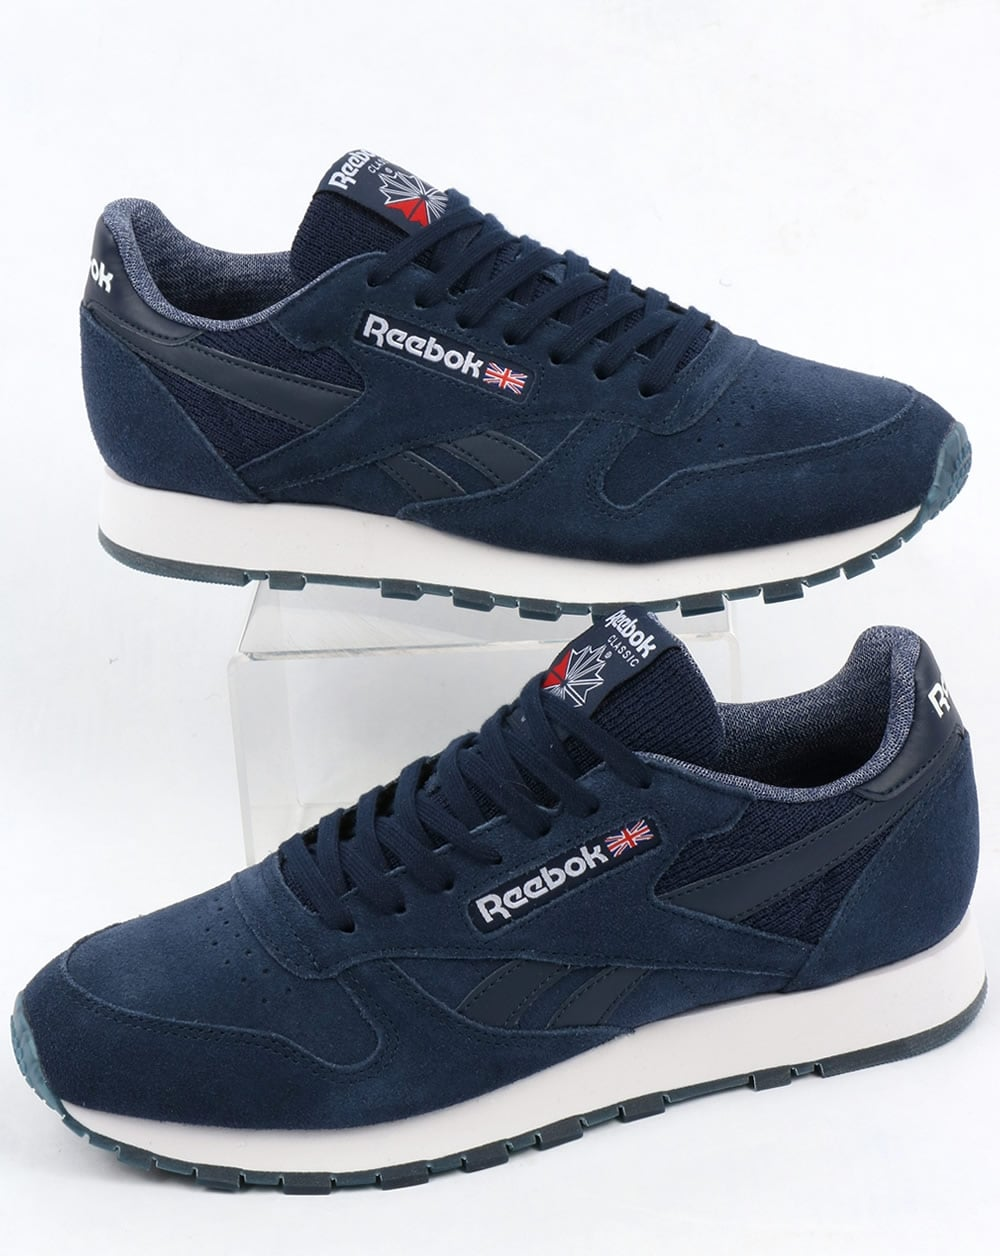 335a9756cd0 Reebok Reebok Classic Leather NM Trainers Navy White